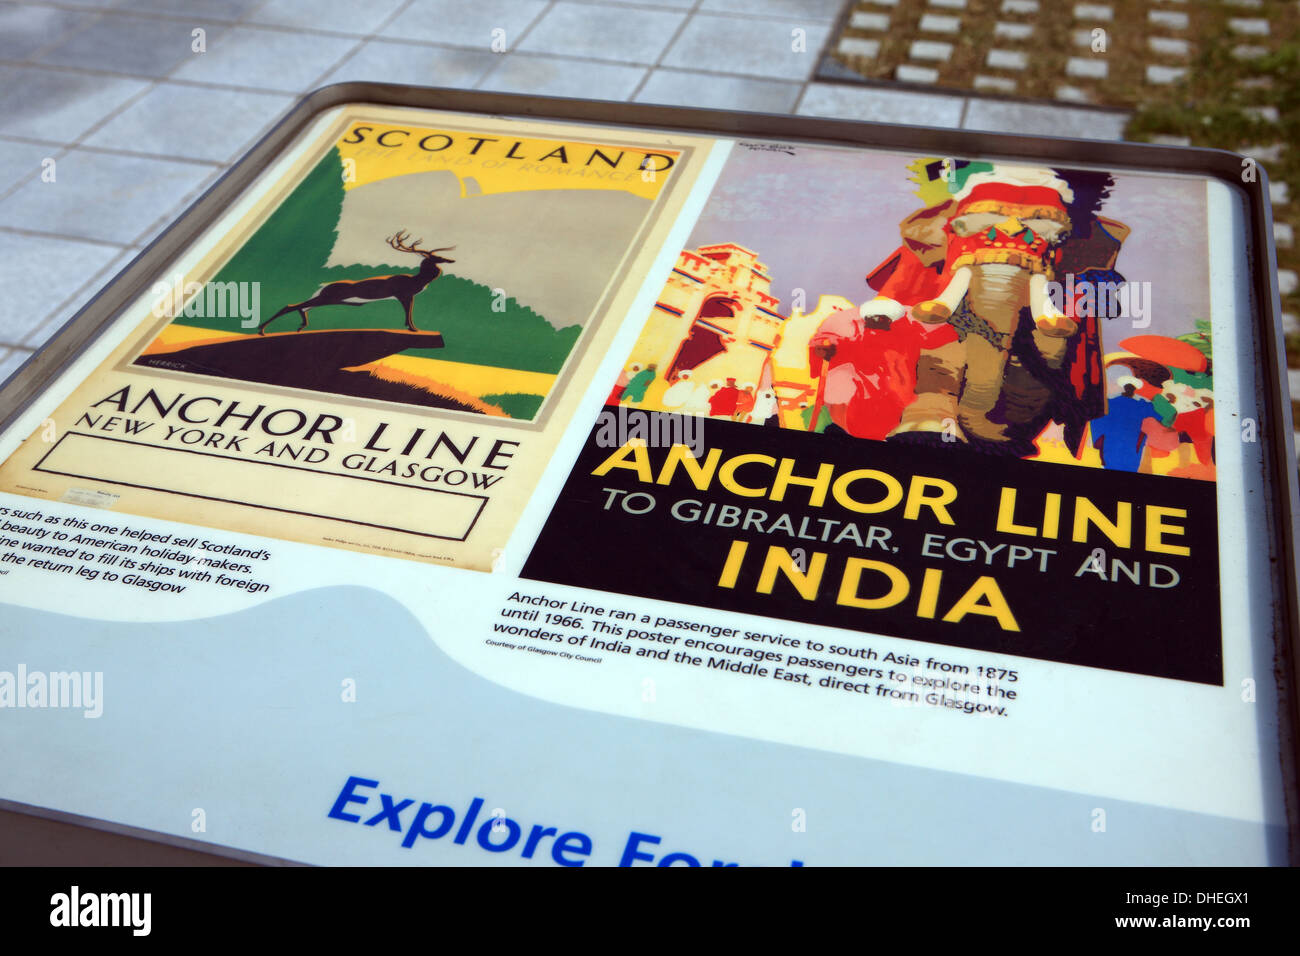 Posters advertising passage from Glasgow to New York, Gibraltar, Egypt and India on the Anchor Line Steam ships - Stock Image